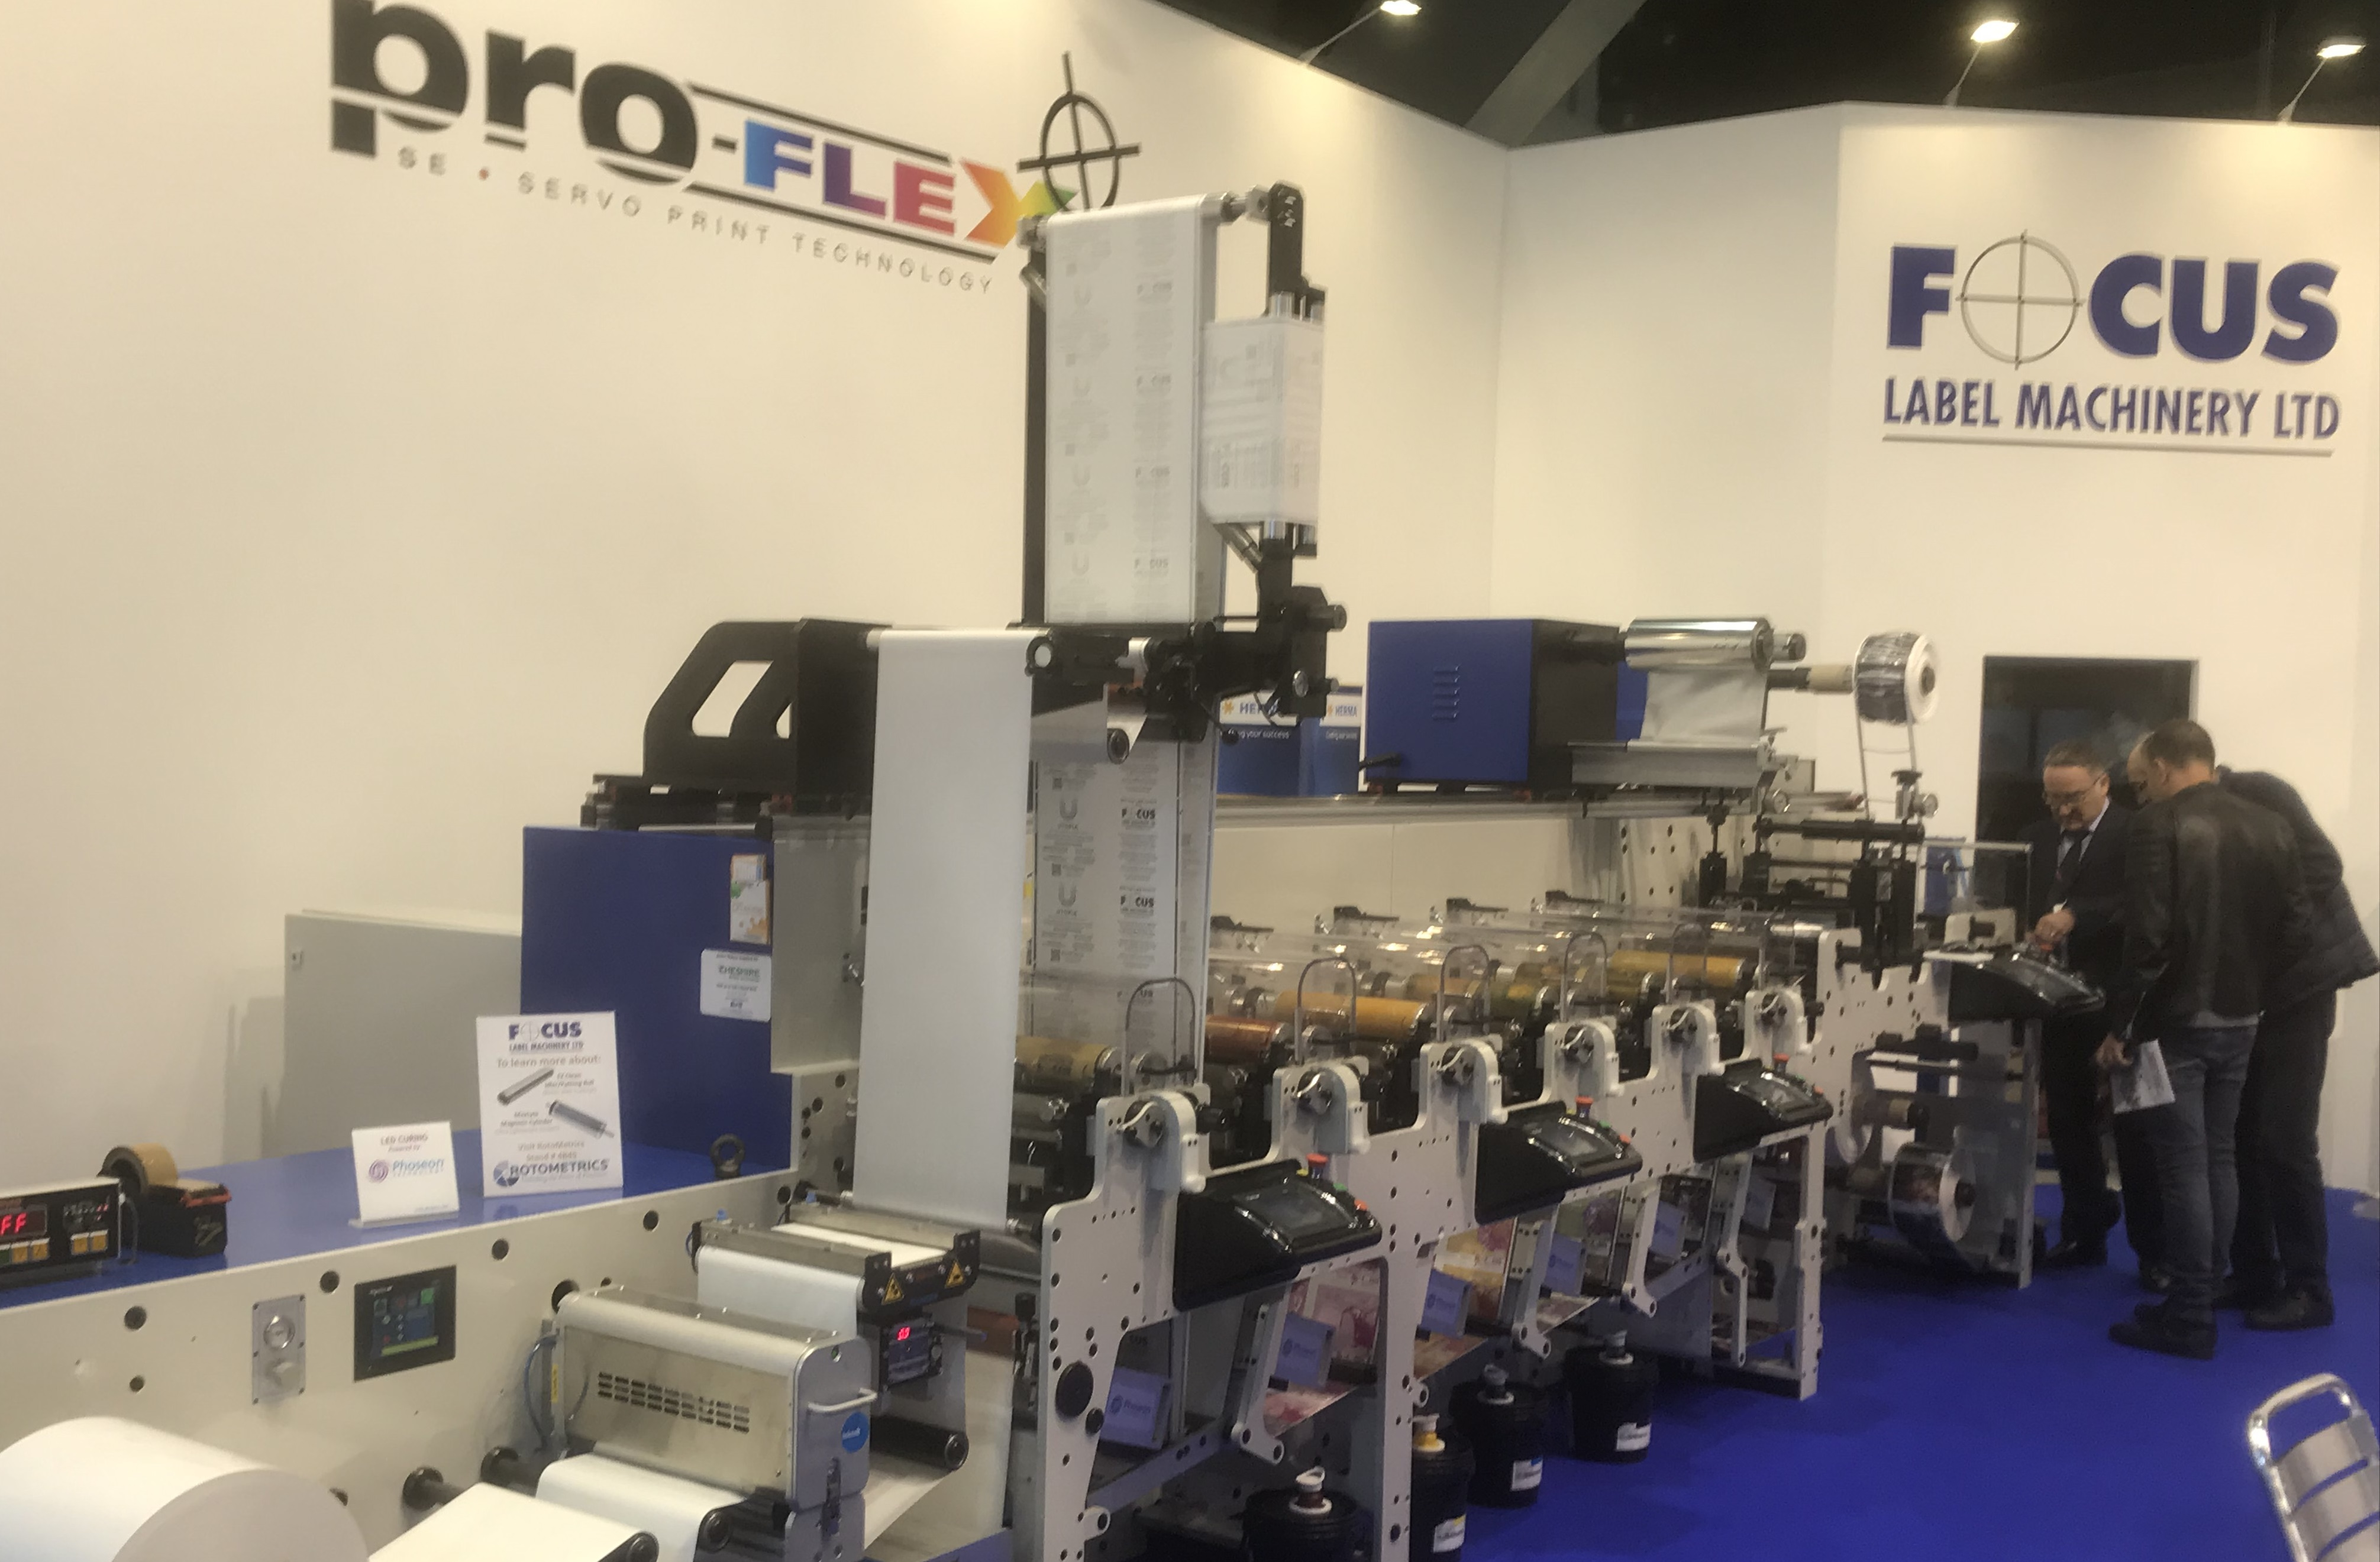 Flexographic Printing Machines: The Proflex Series